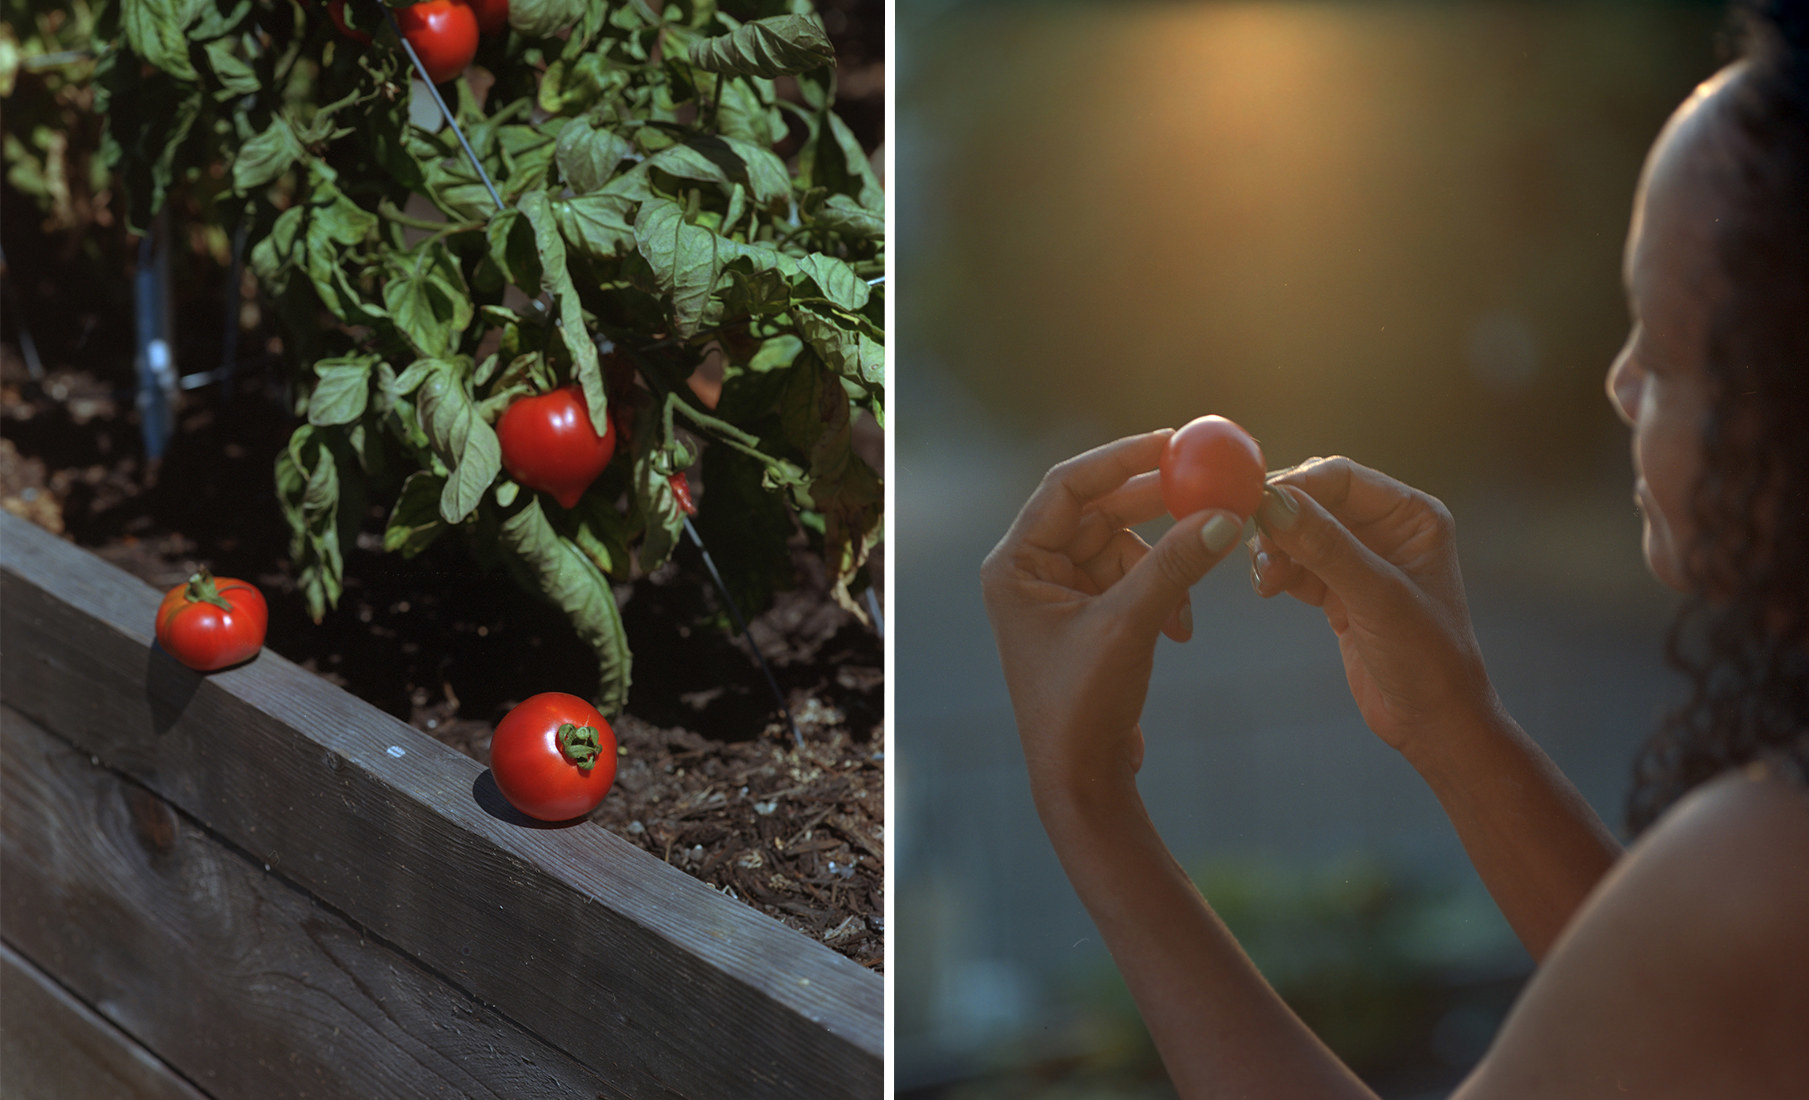 On the left, two tomatoes on a garden rail, right, the photographer's mother holding a tomato